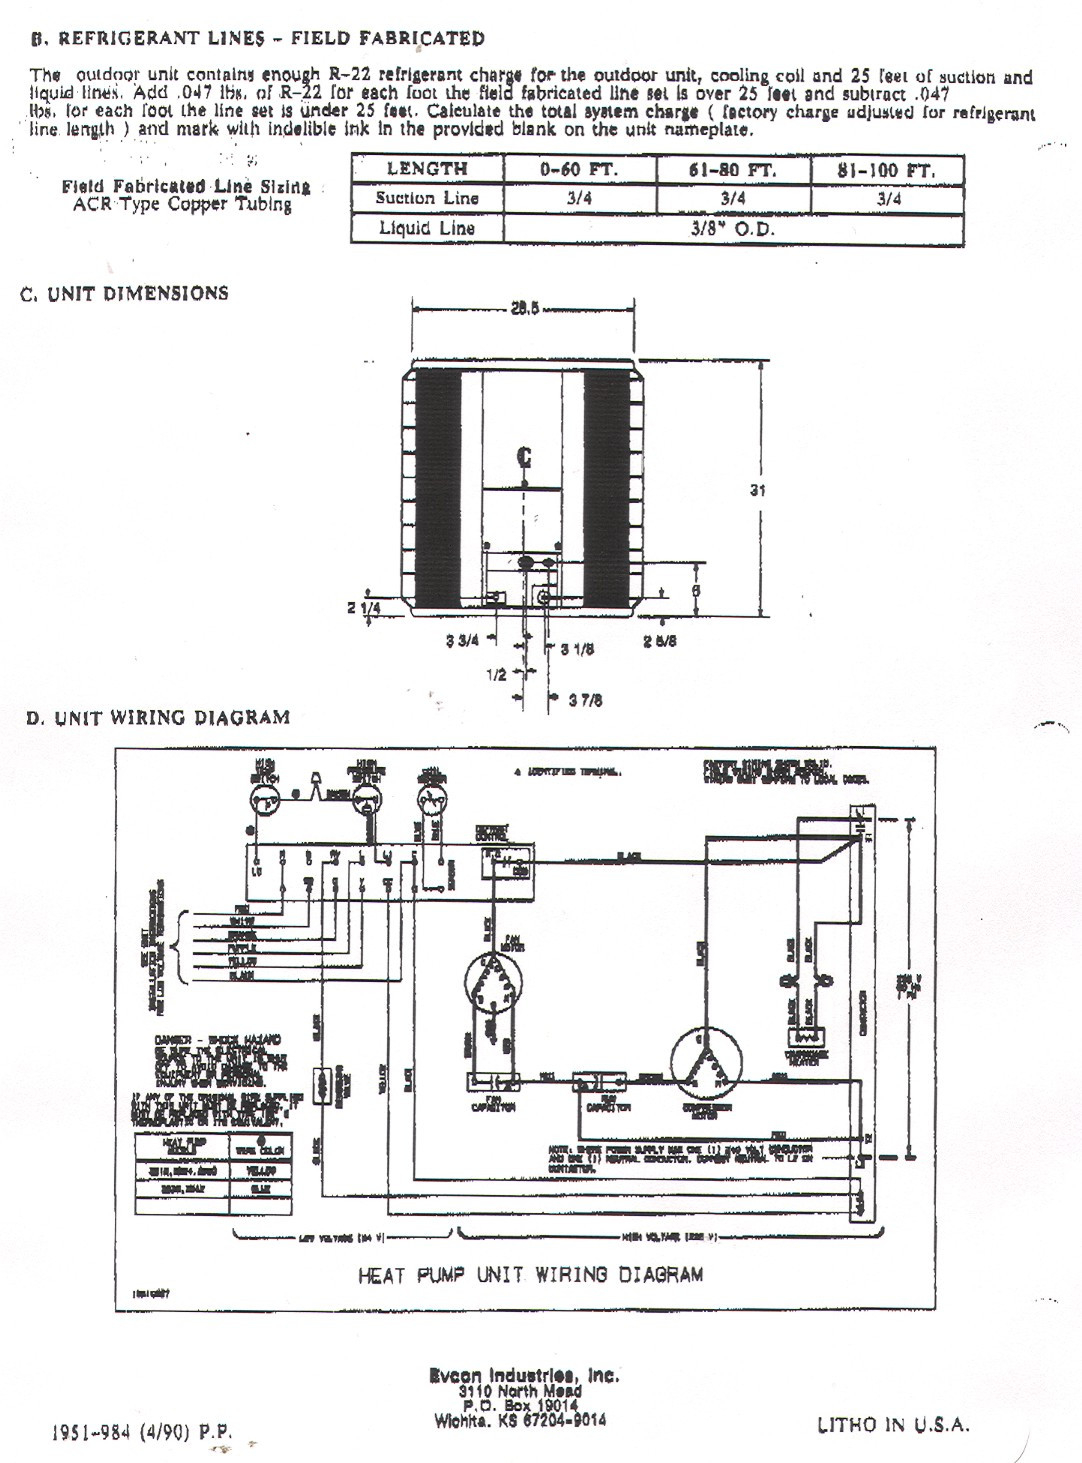 Heat Pump Wiring Diagram Goodman Sample Air Handler Collection Awesome 53 In Robertshaw